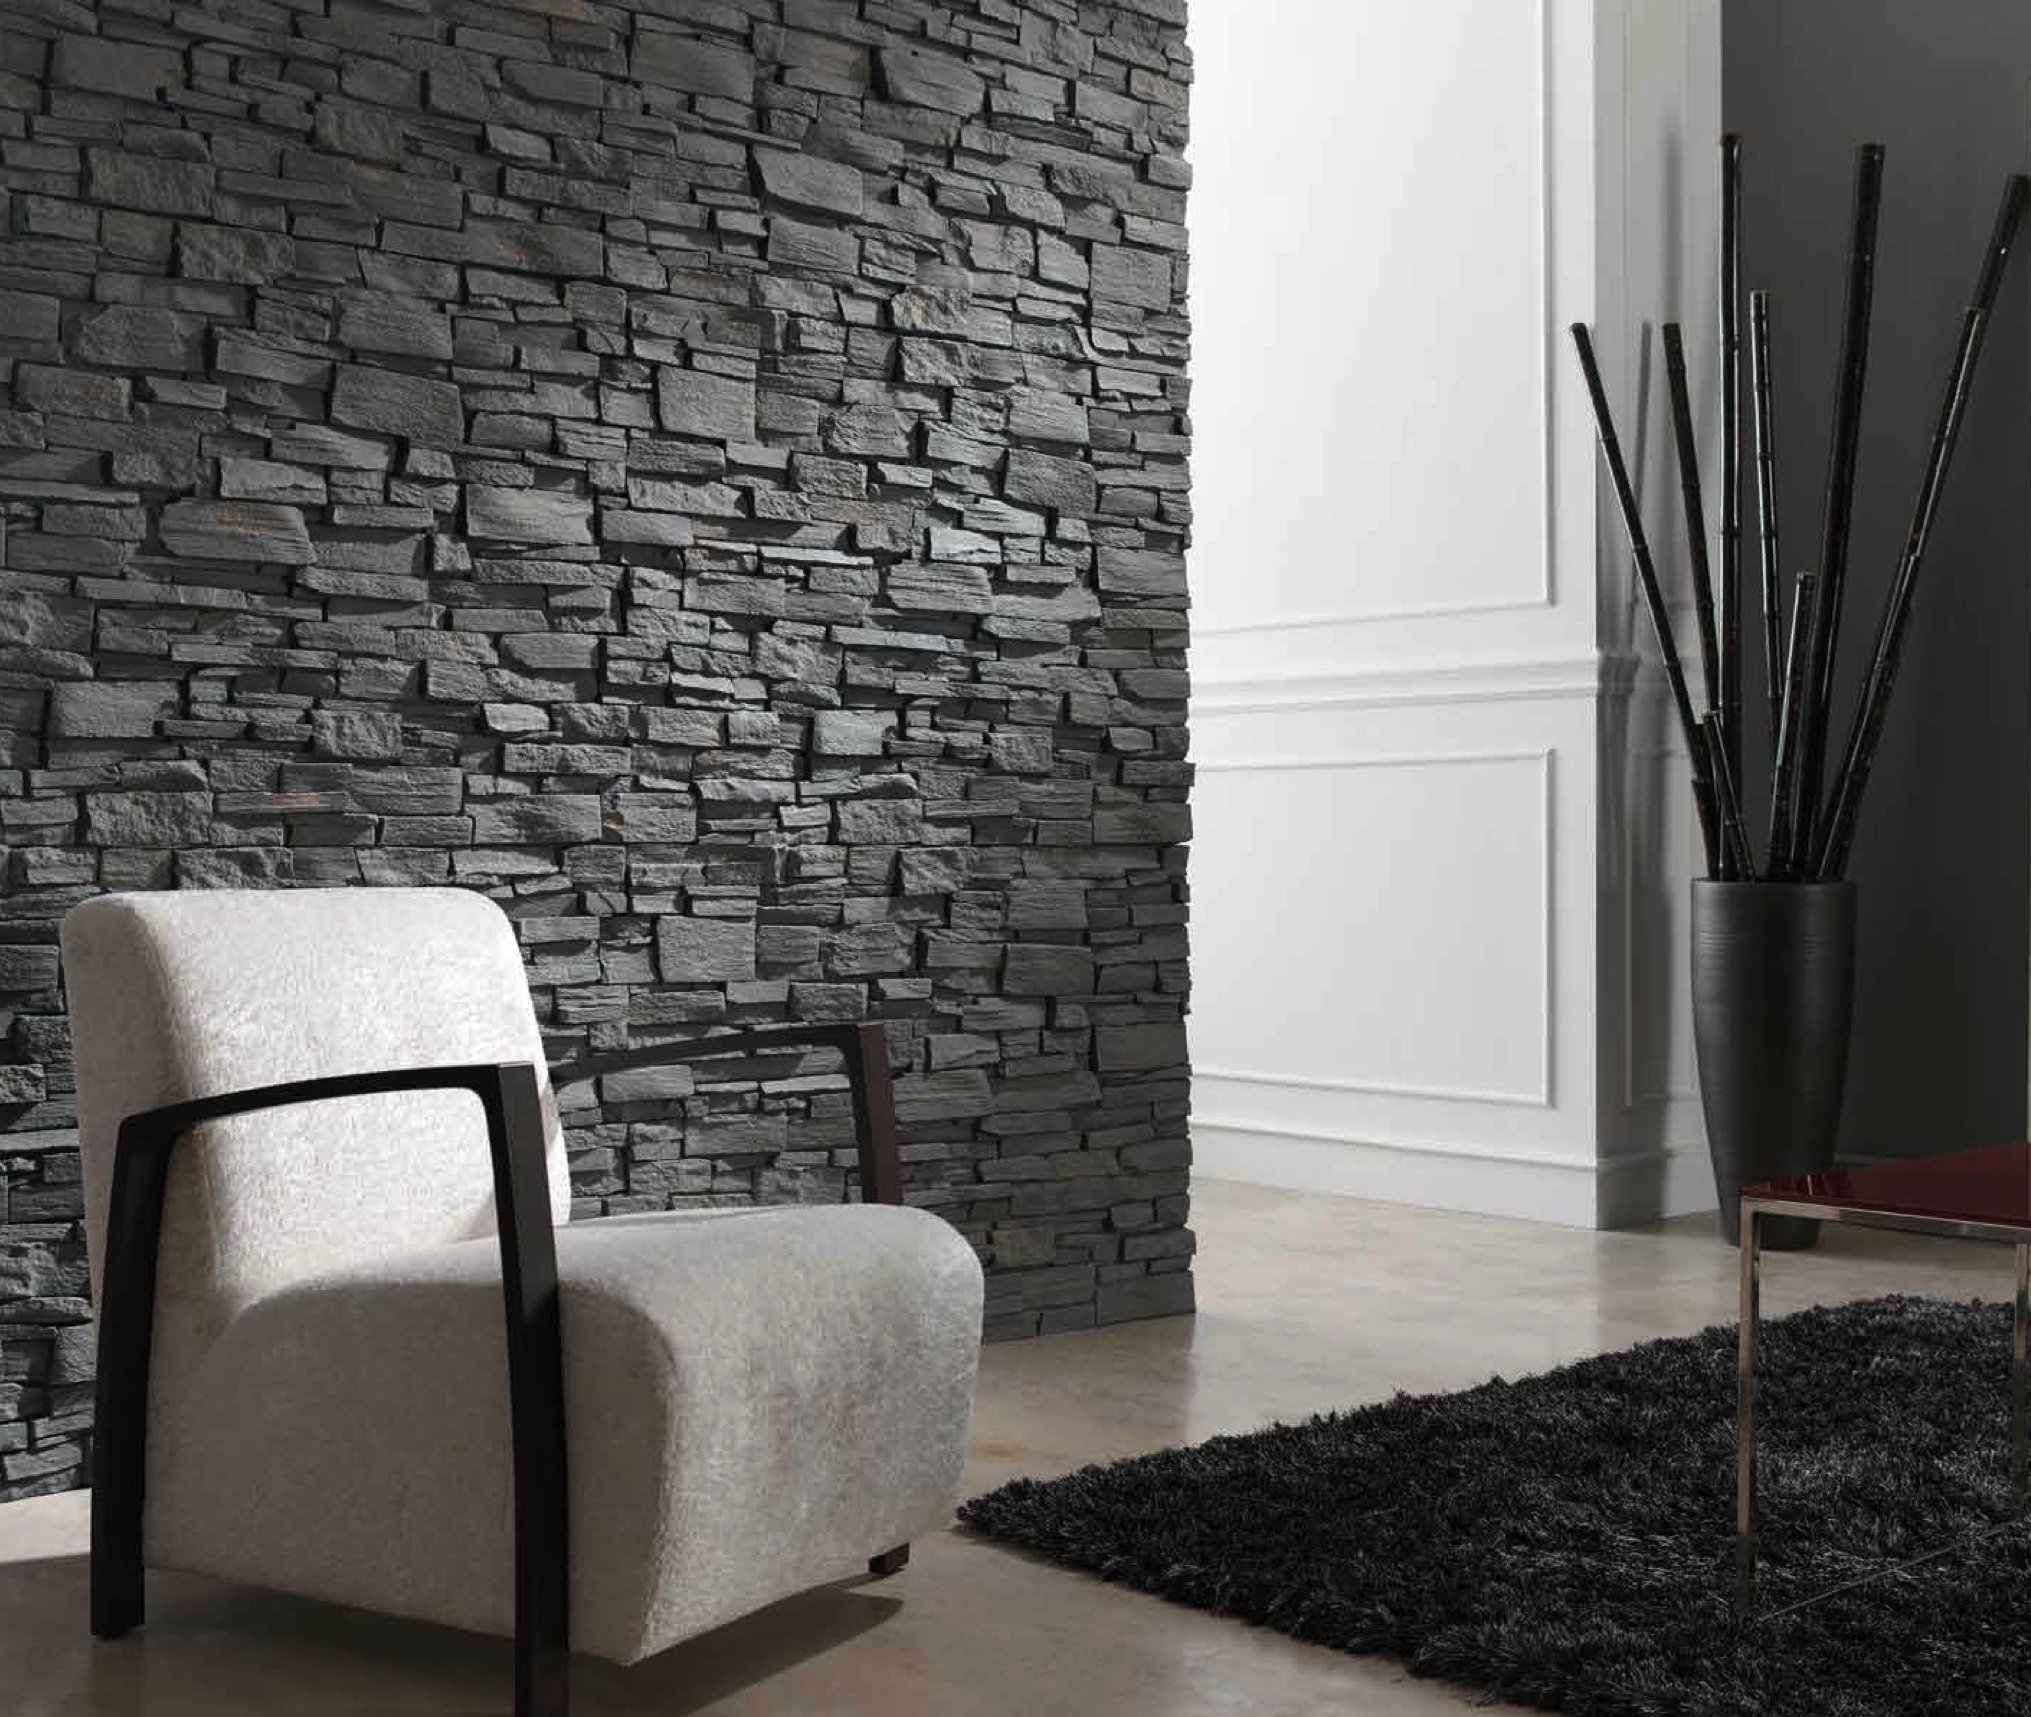 Decorative Stone Accent : Where to buy fake stone dreamwall wallcoverings with a